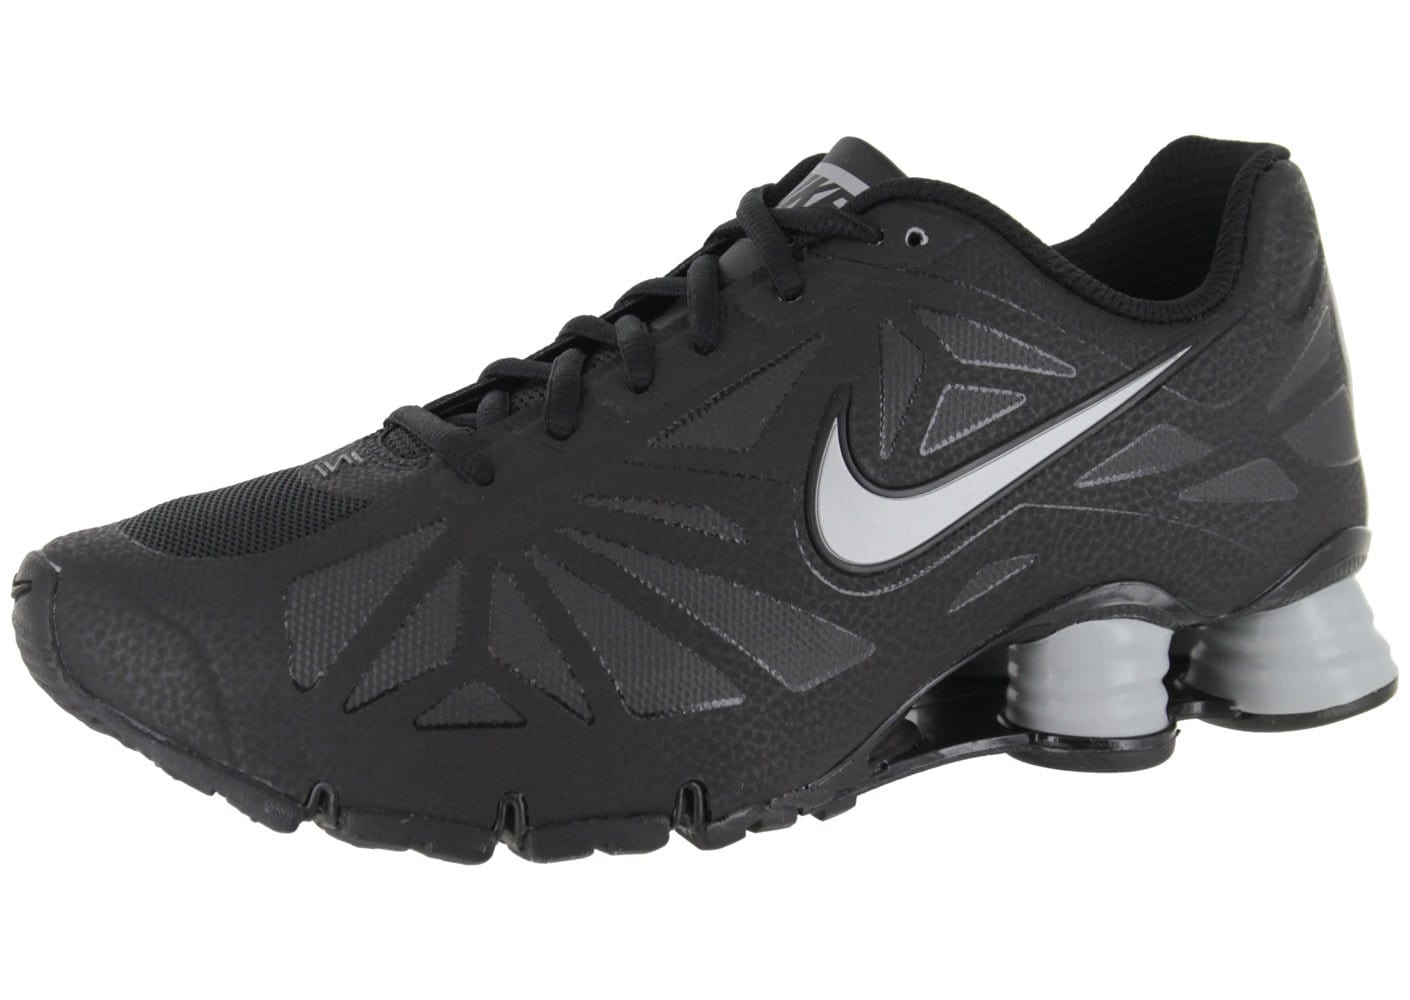 Nike Shox Turbo 14 Noire Chaussures Baskets homme Chausport